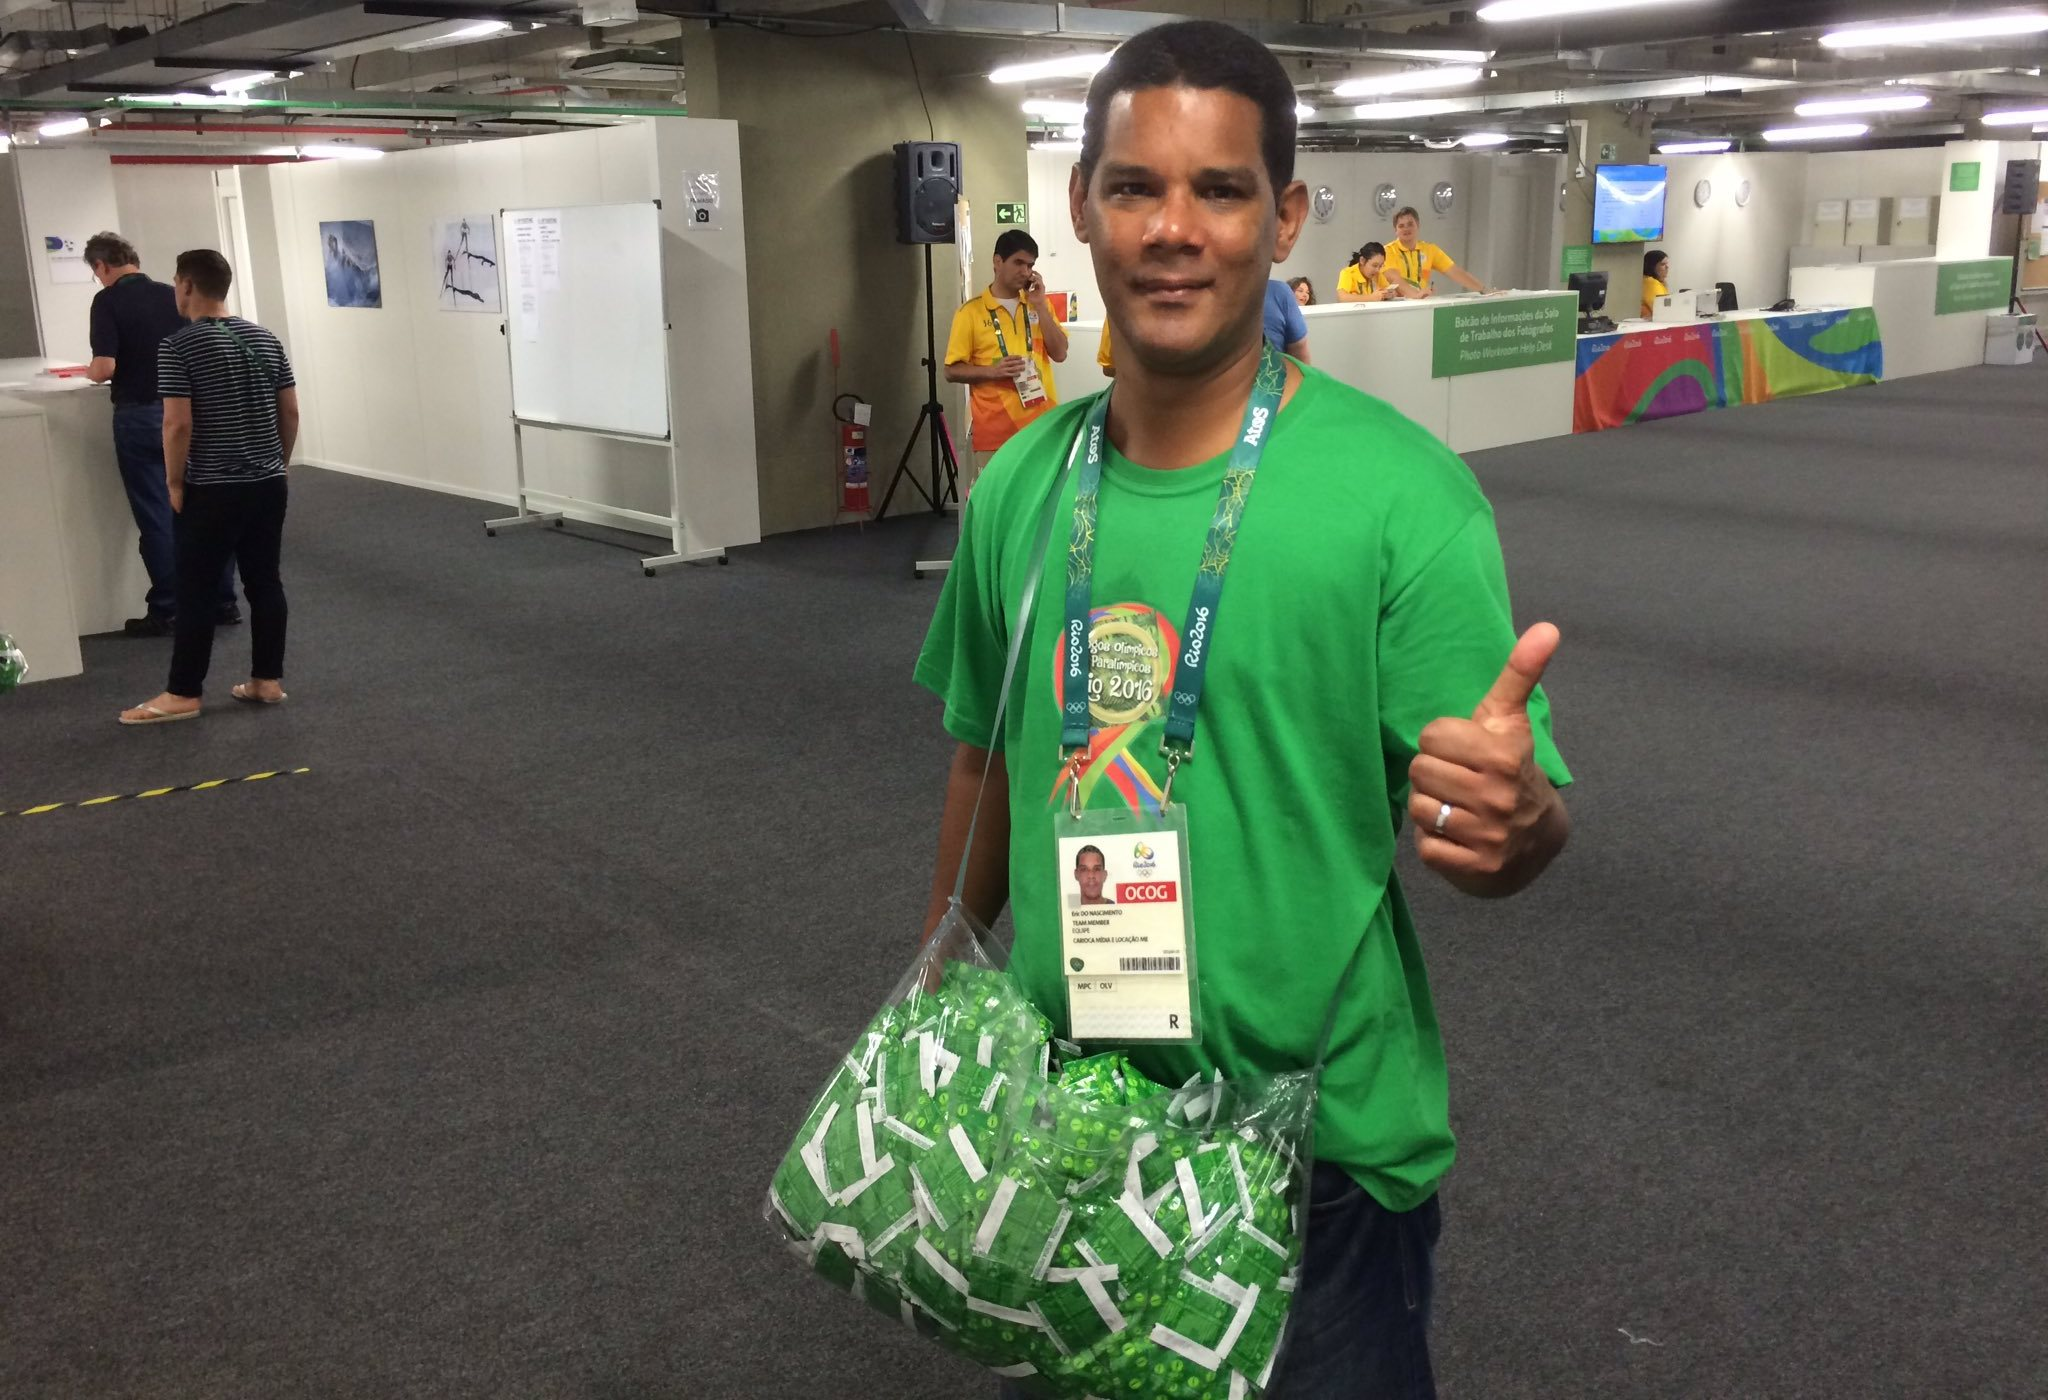 Meet Eric, the guy whose job it is to walk around the Olympics with a big sack of condoms